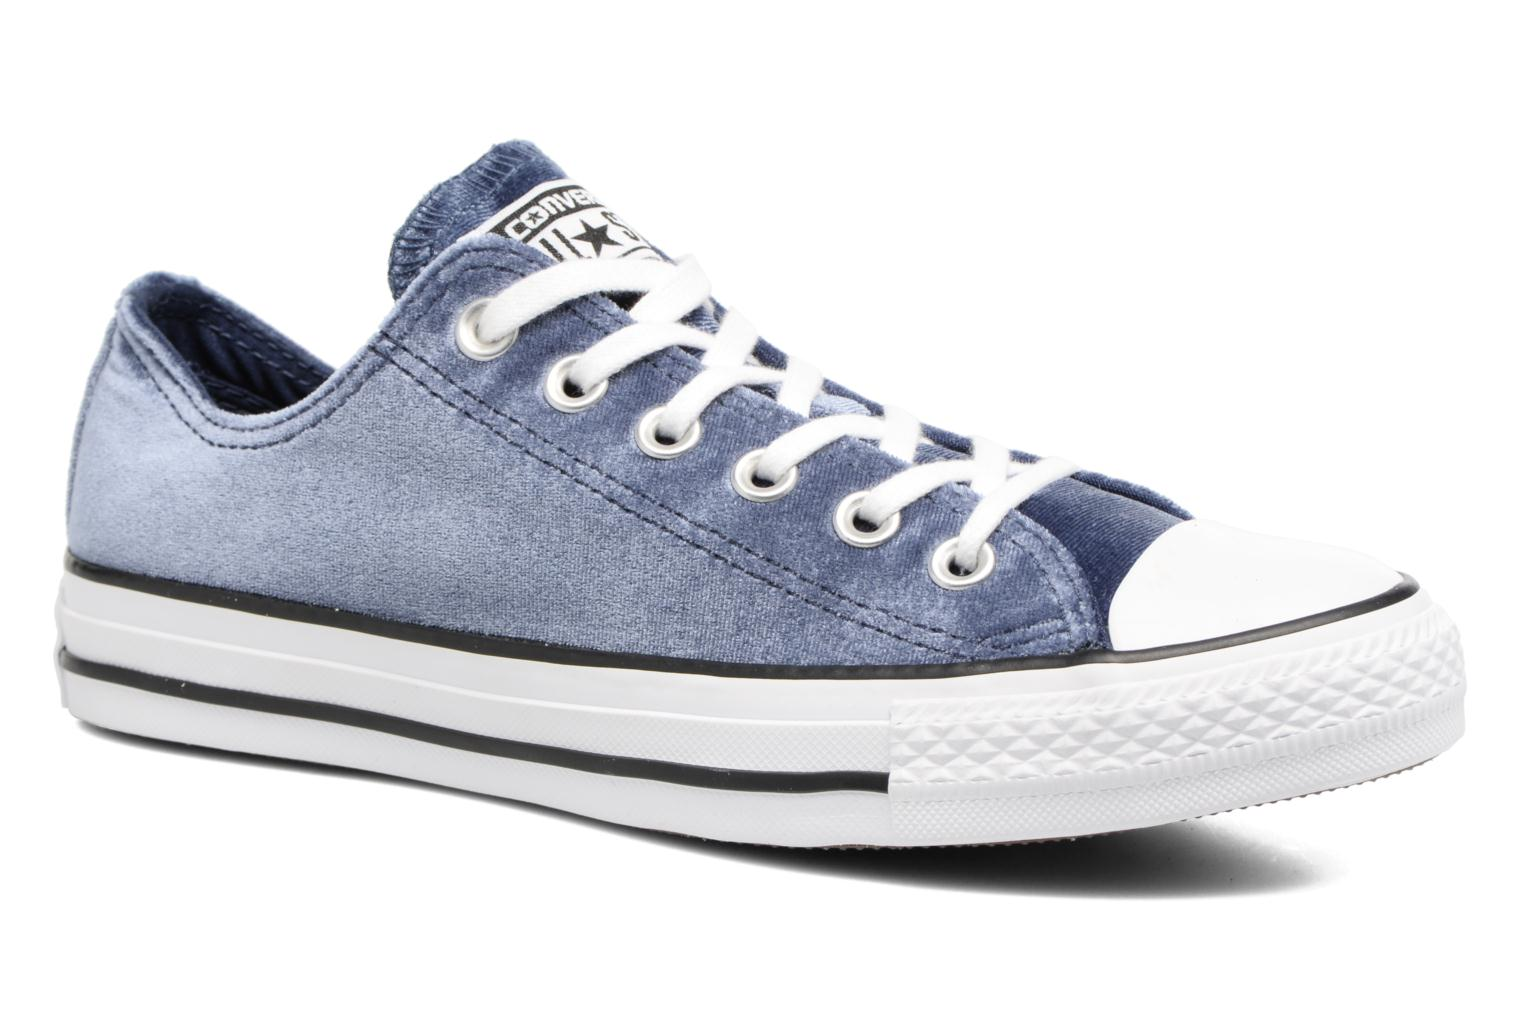 Marques Chaussure femme Converse femme Chuck Taylor All Star Velvet Ox Midnight Navy/White/White